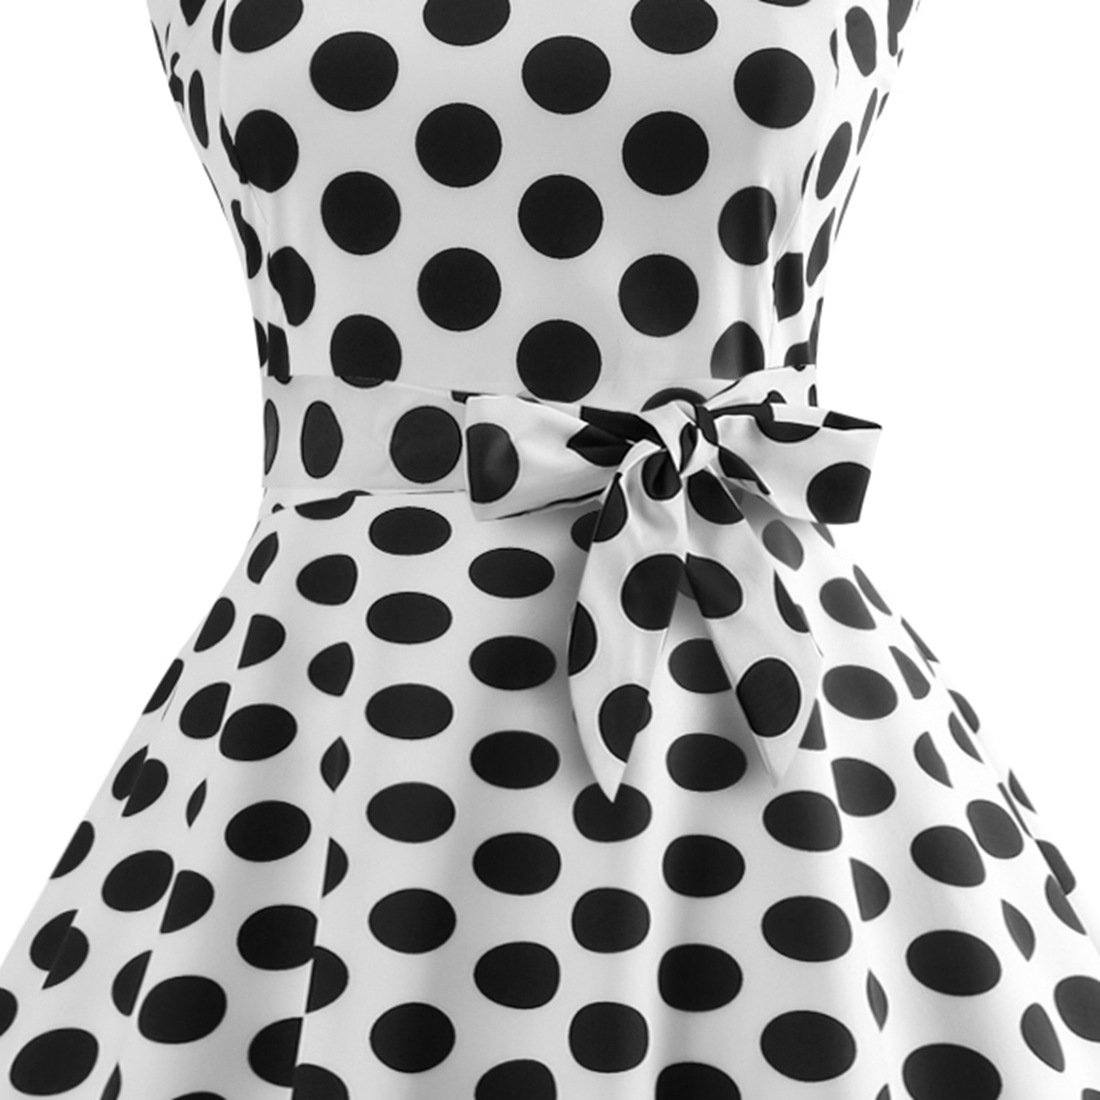 9ad6ffd199b Sheng Xi Women s Vintage Polka Dot Prom Dresses 50 s Rockabilly Bandage at  Amazon Women s Clothing store